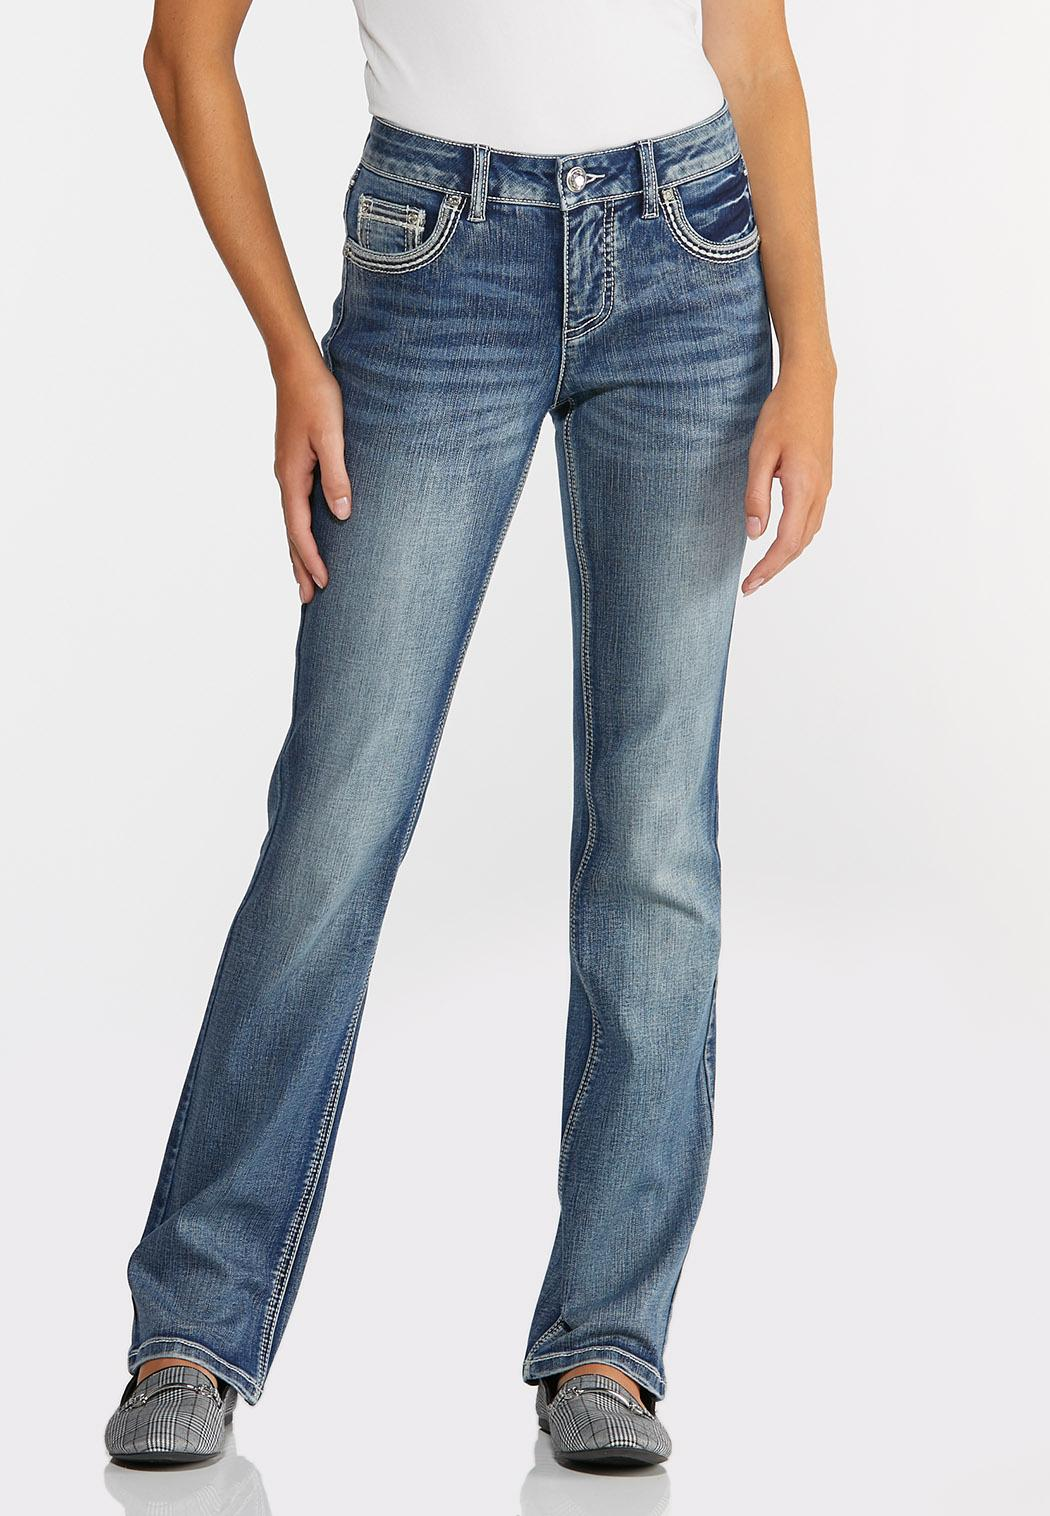 Petite Embellished Cross Pocket Jeans (Item #44351039)